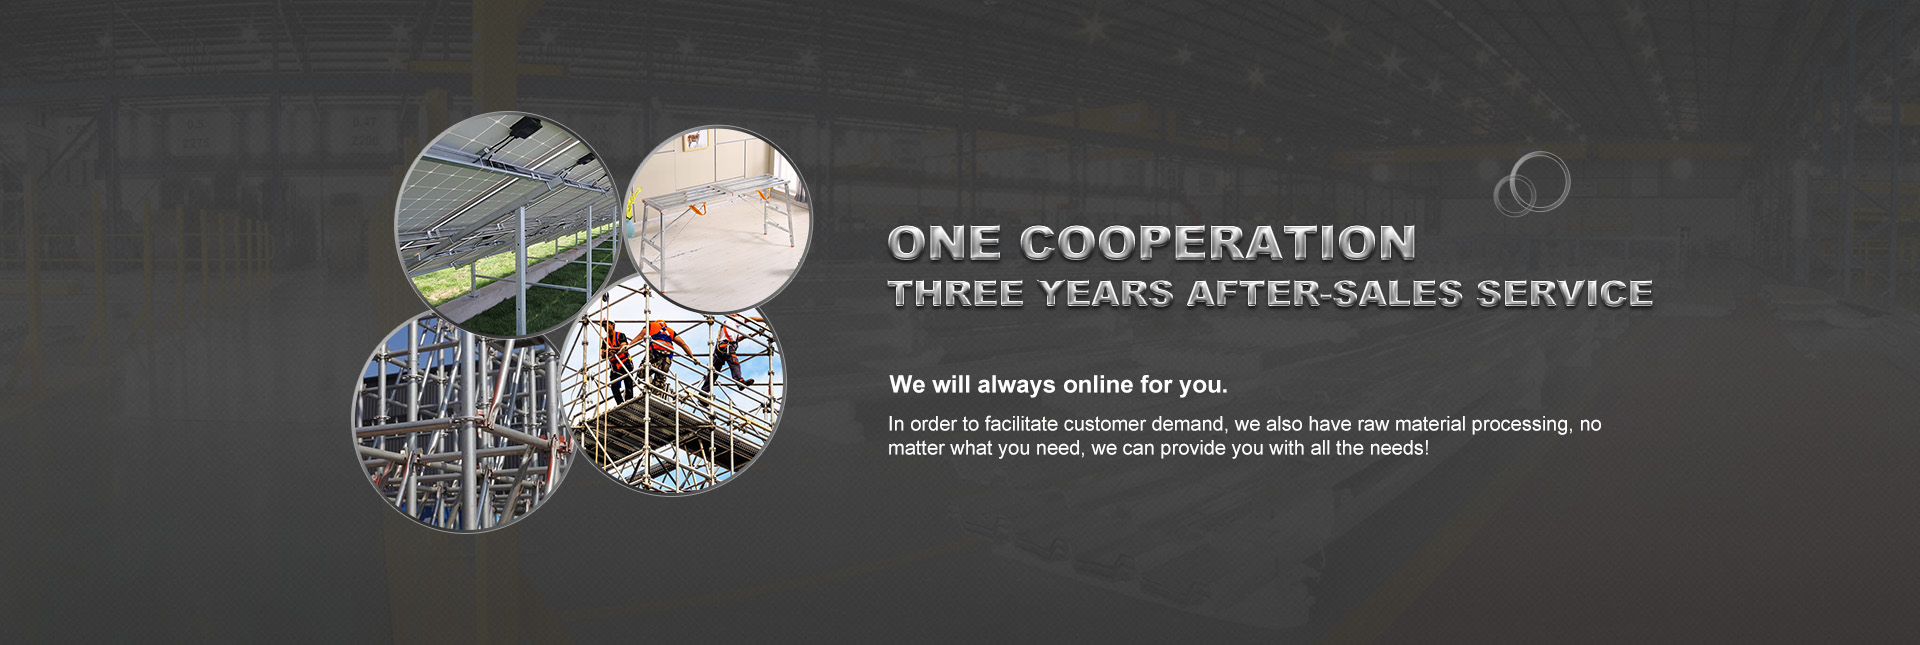 One cooperation, three years after-sales service